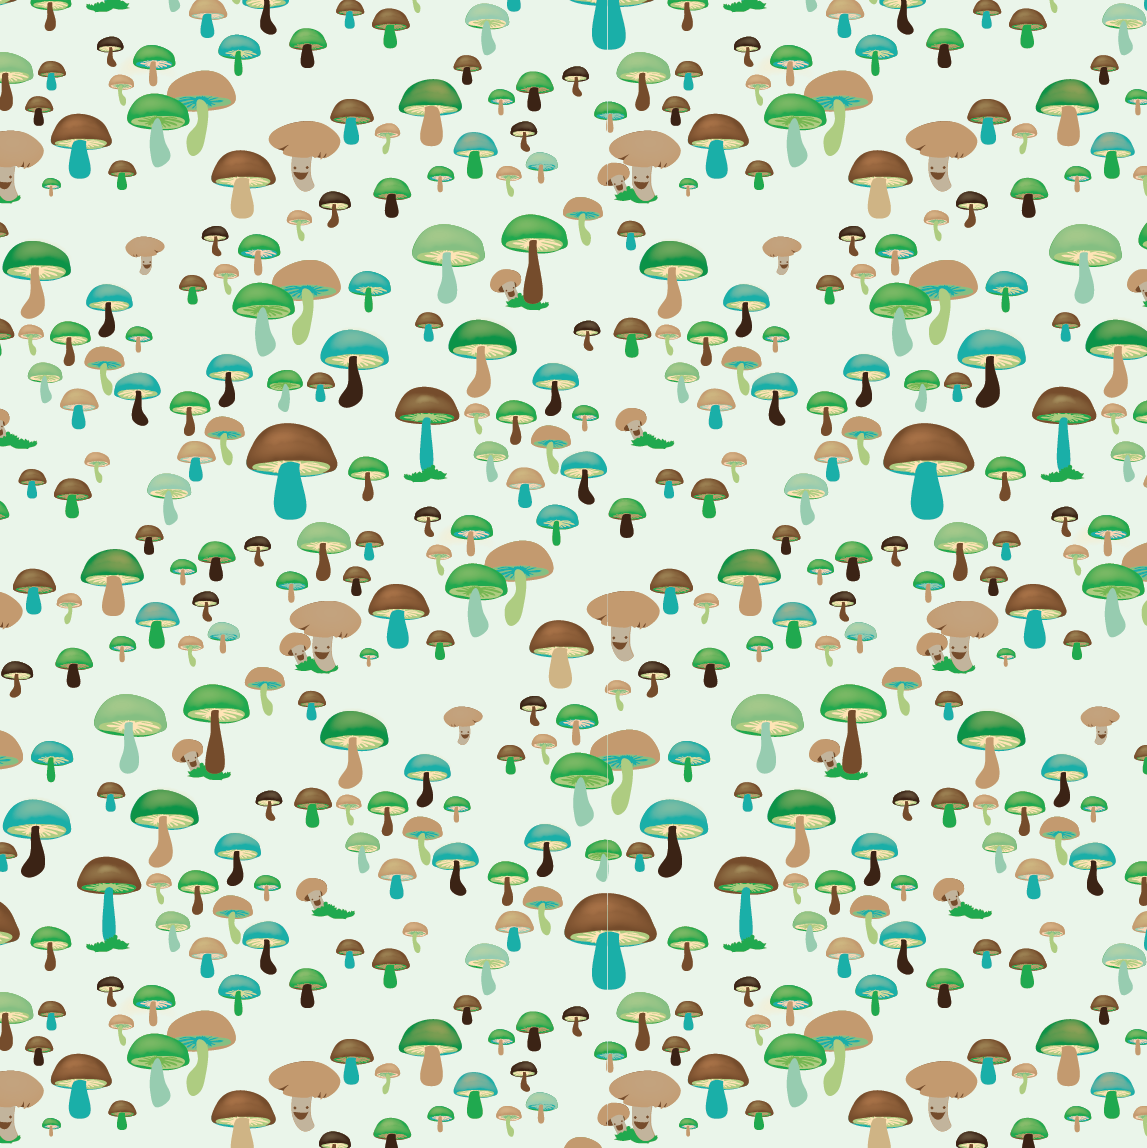 design surface pattern nature mushrooms nonna design illustration